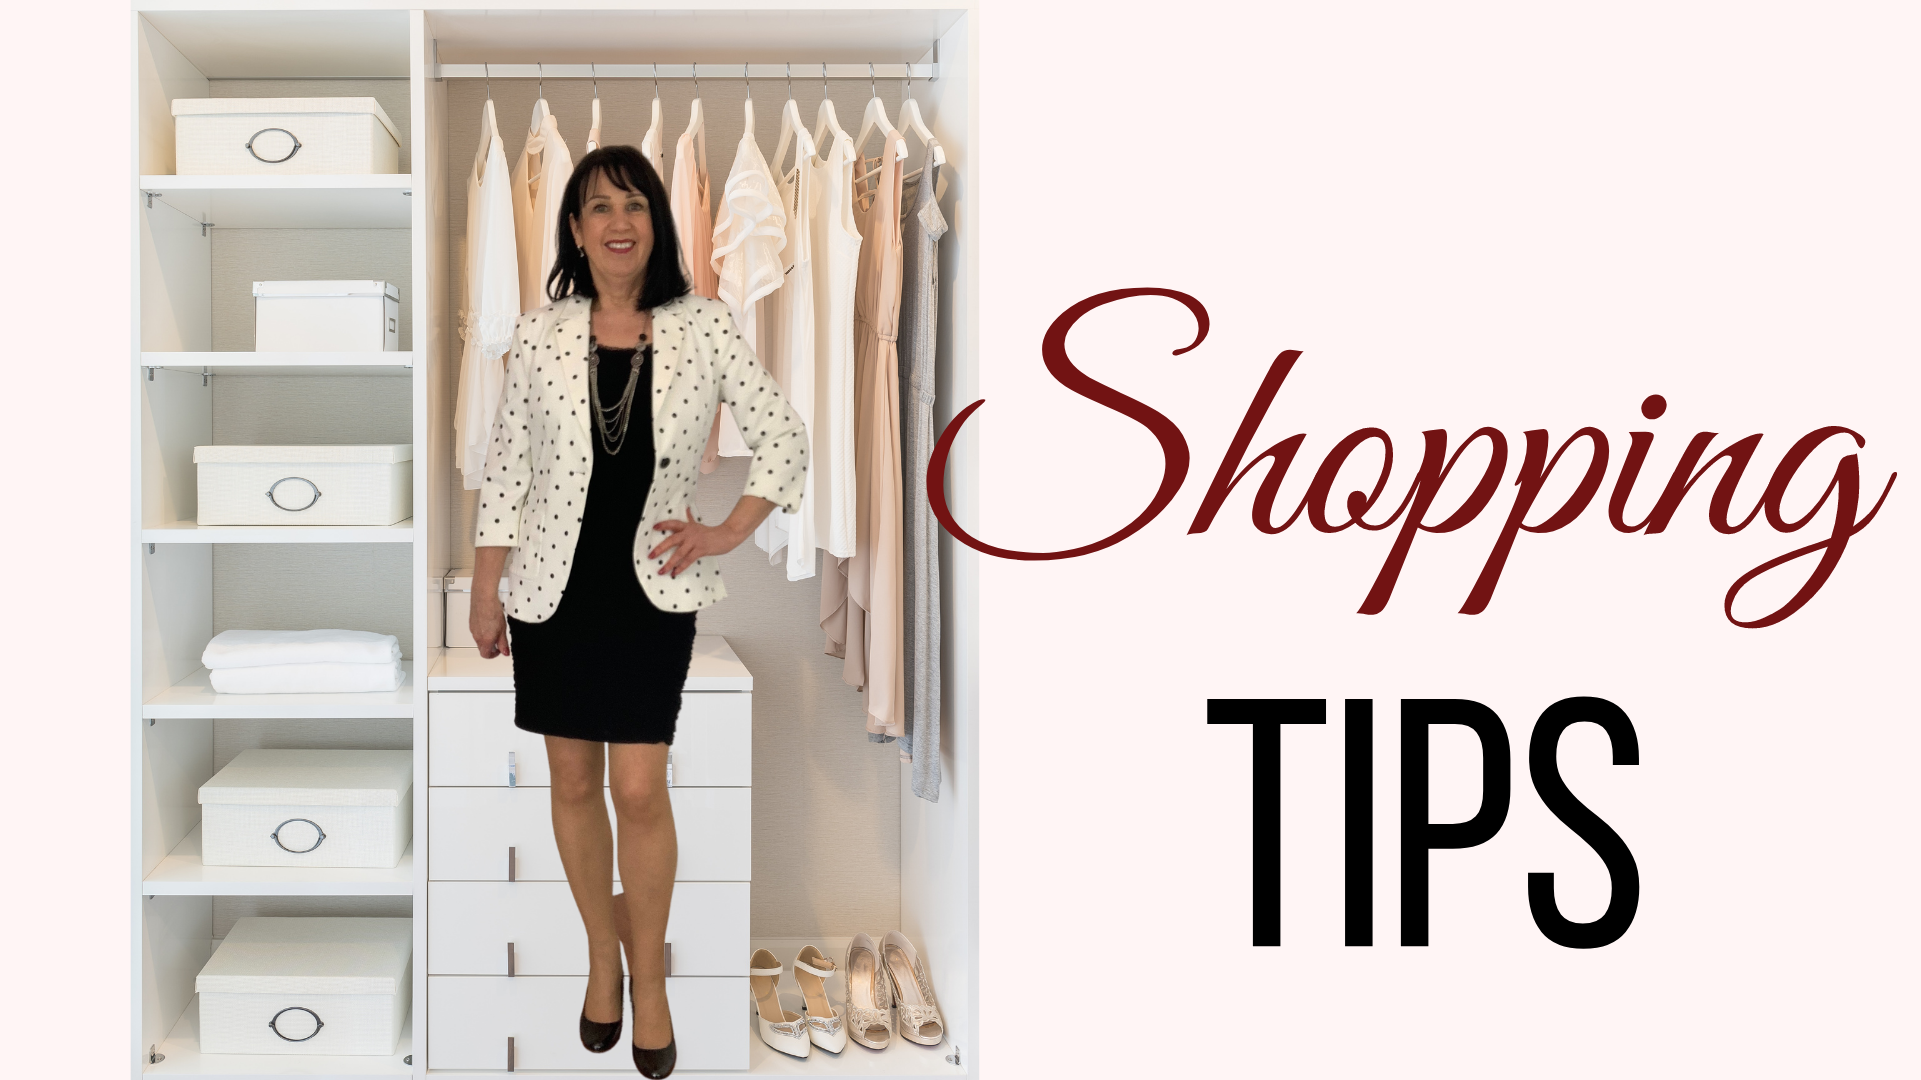 CoverHow to Shop to Look Great and Dress With Ease